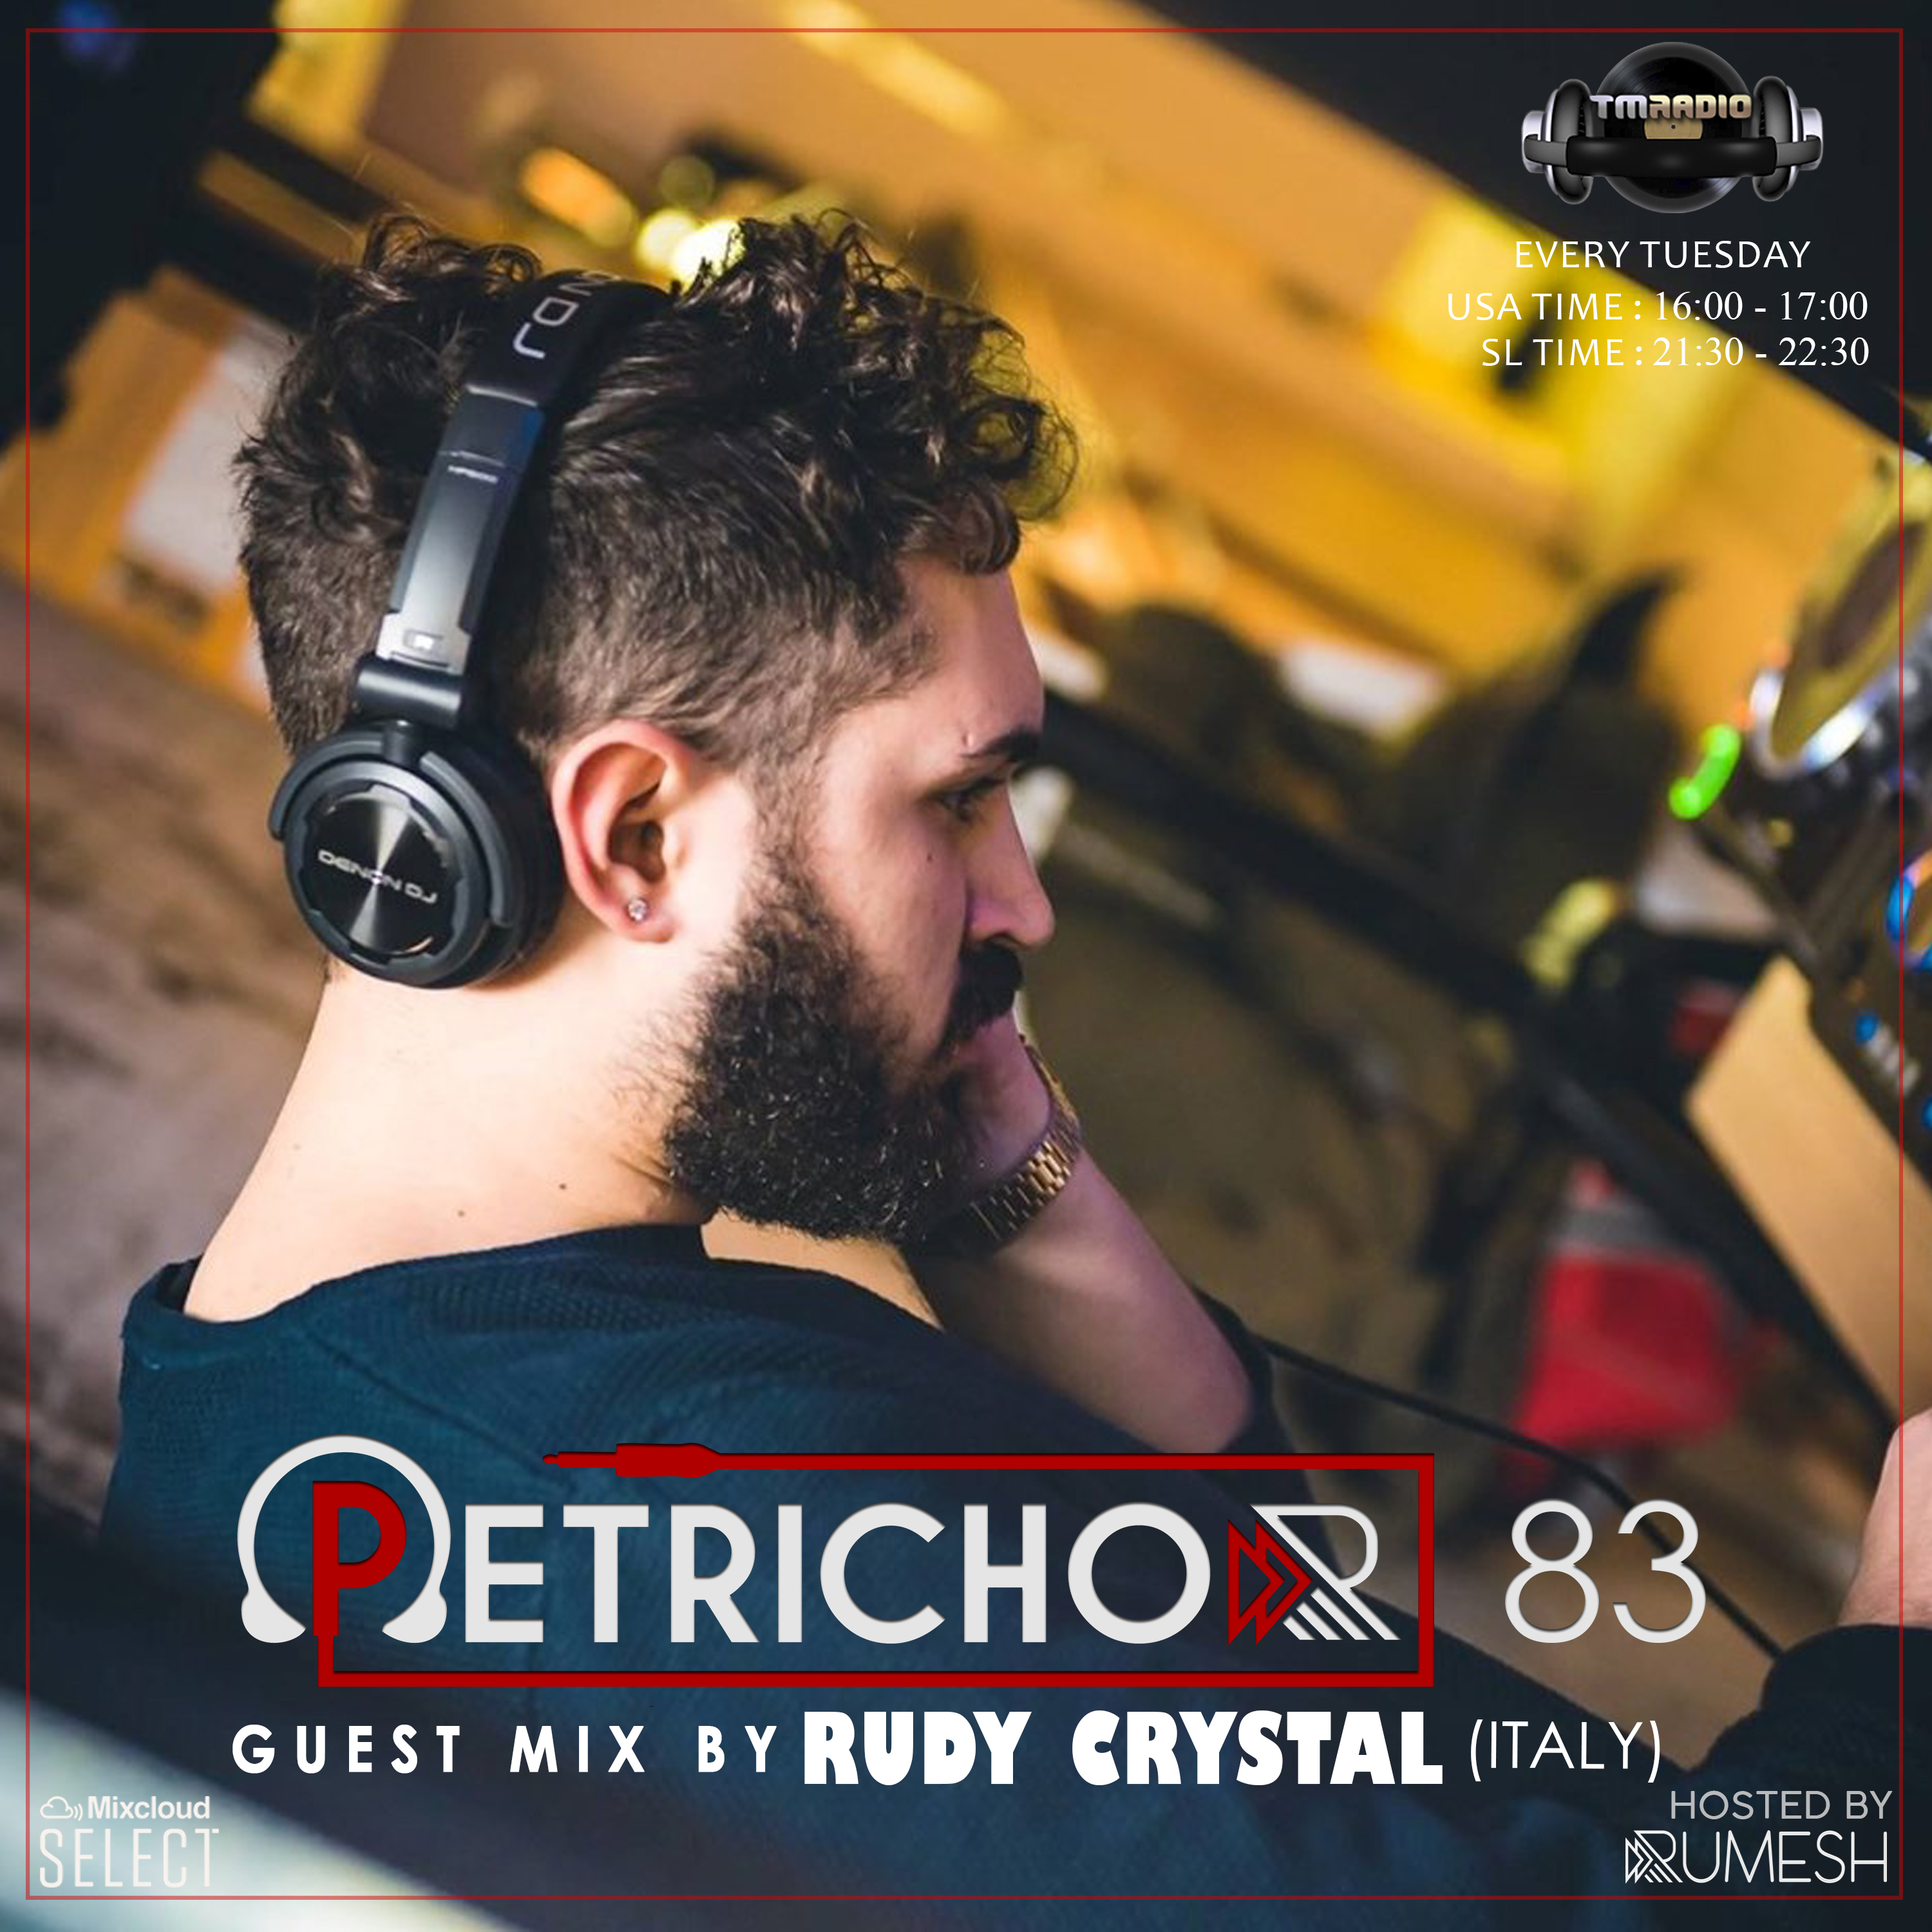 Petrichor :: Petrichor 83 guest mix by Rudy Crystal (Italy) (aired on June 9th, 2020) banner logo